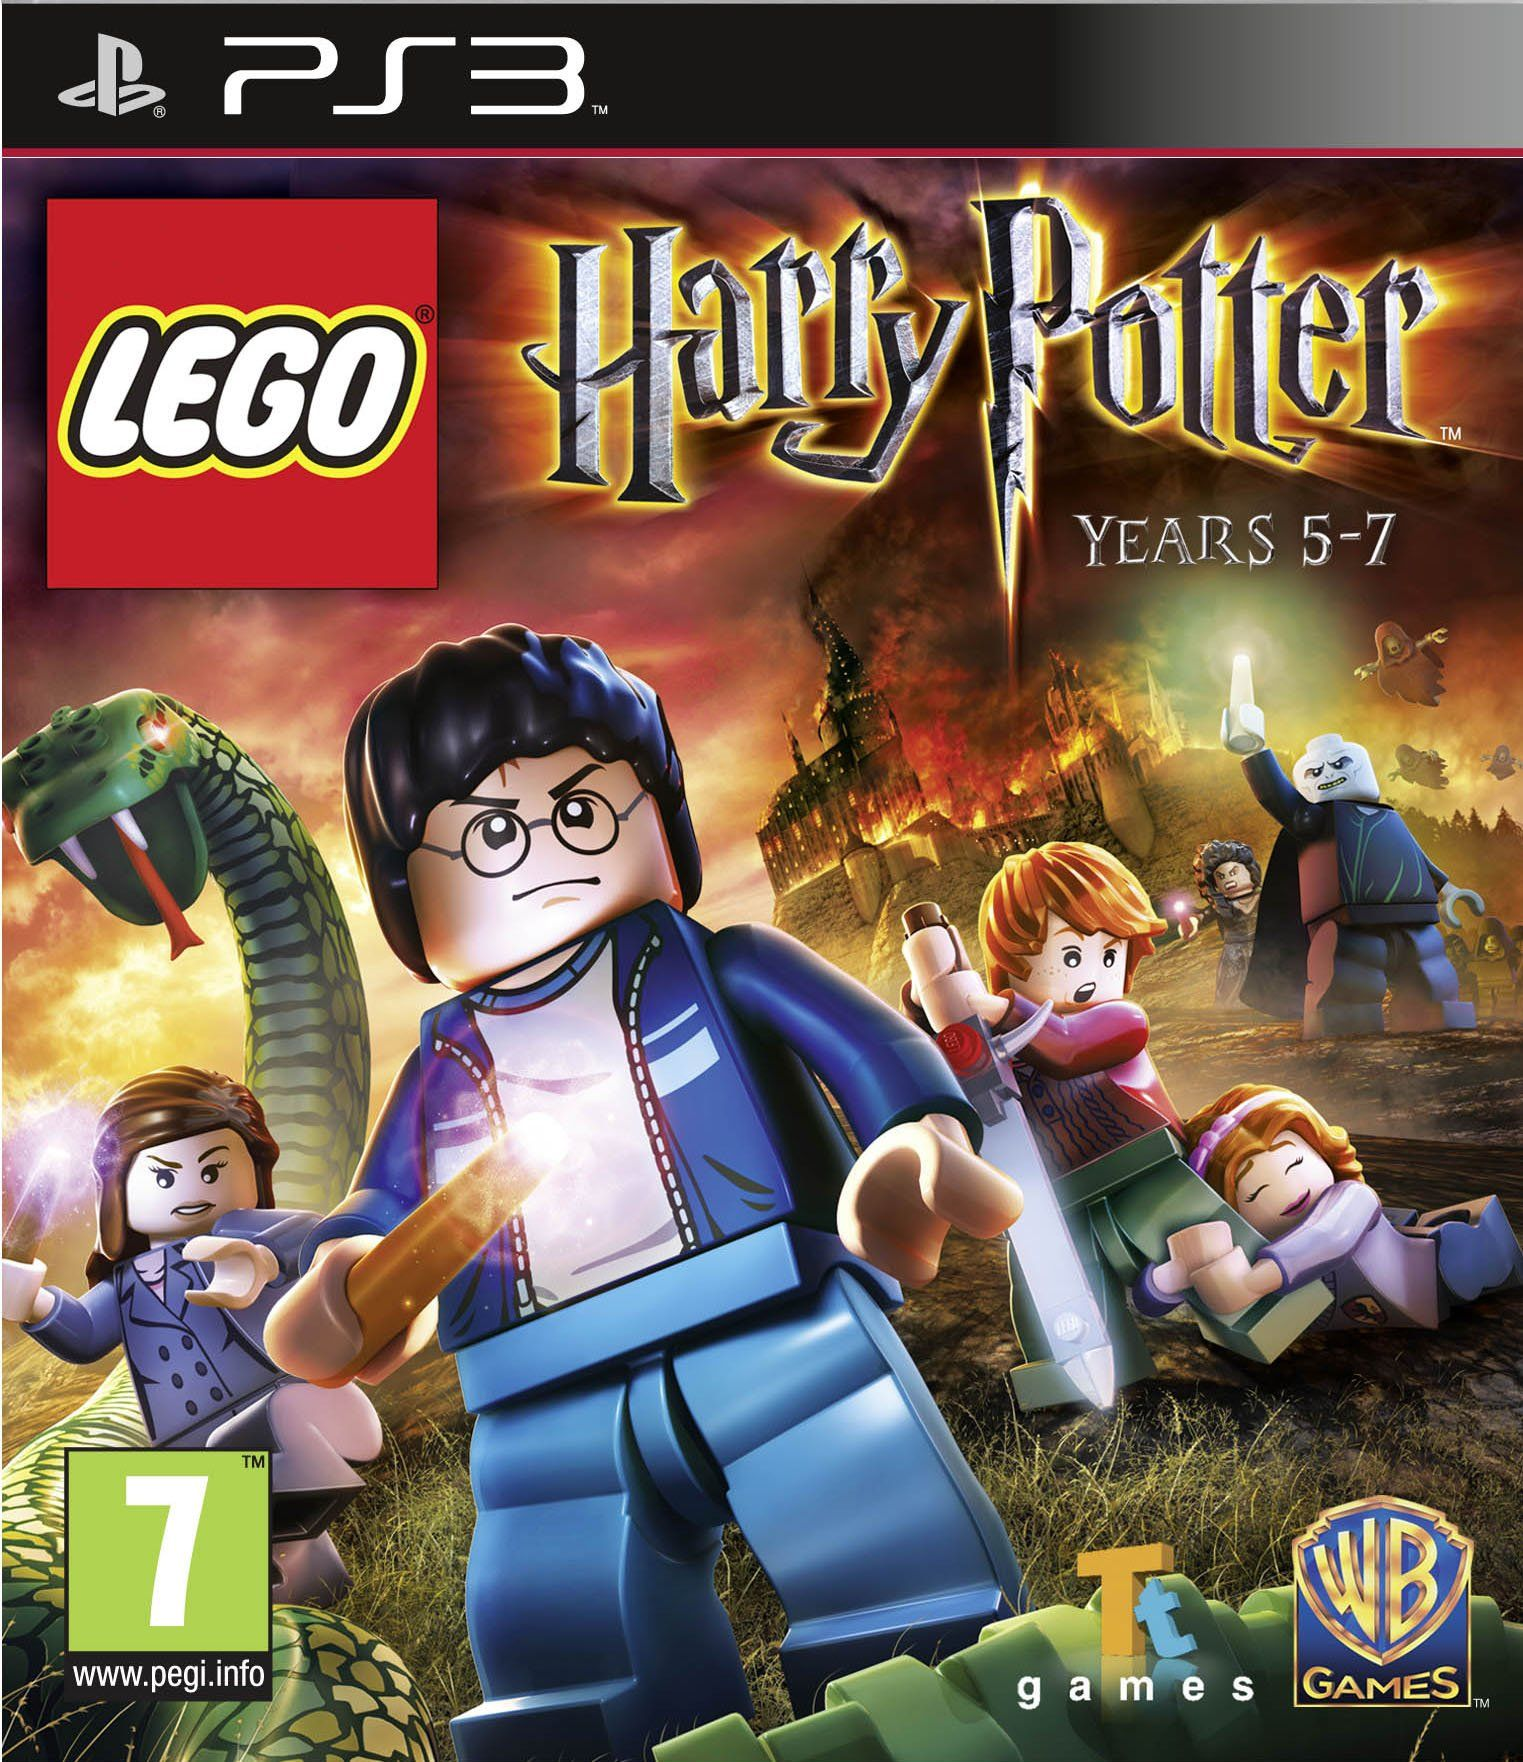 lego harry potter wii 5 7